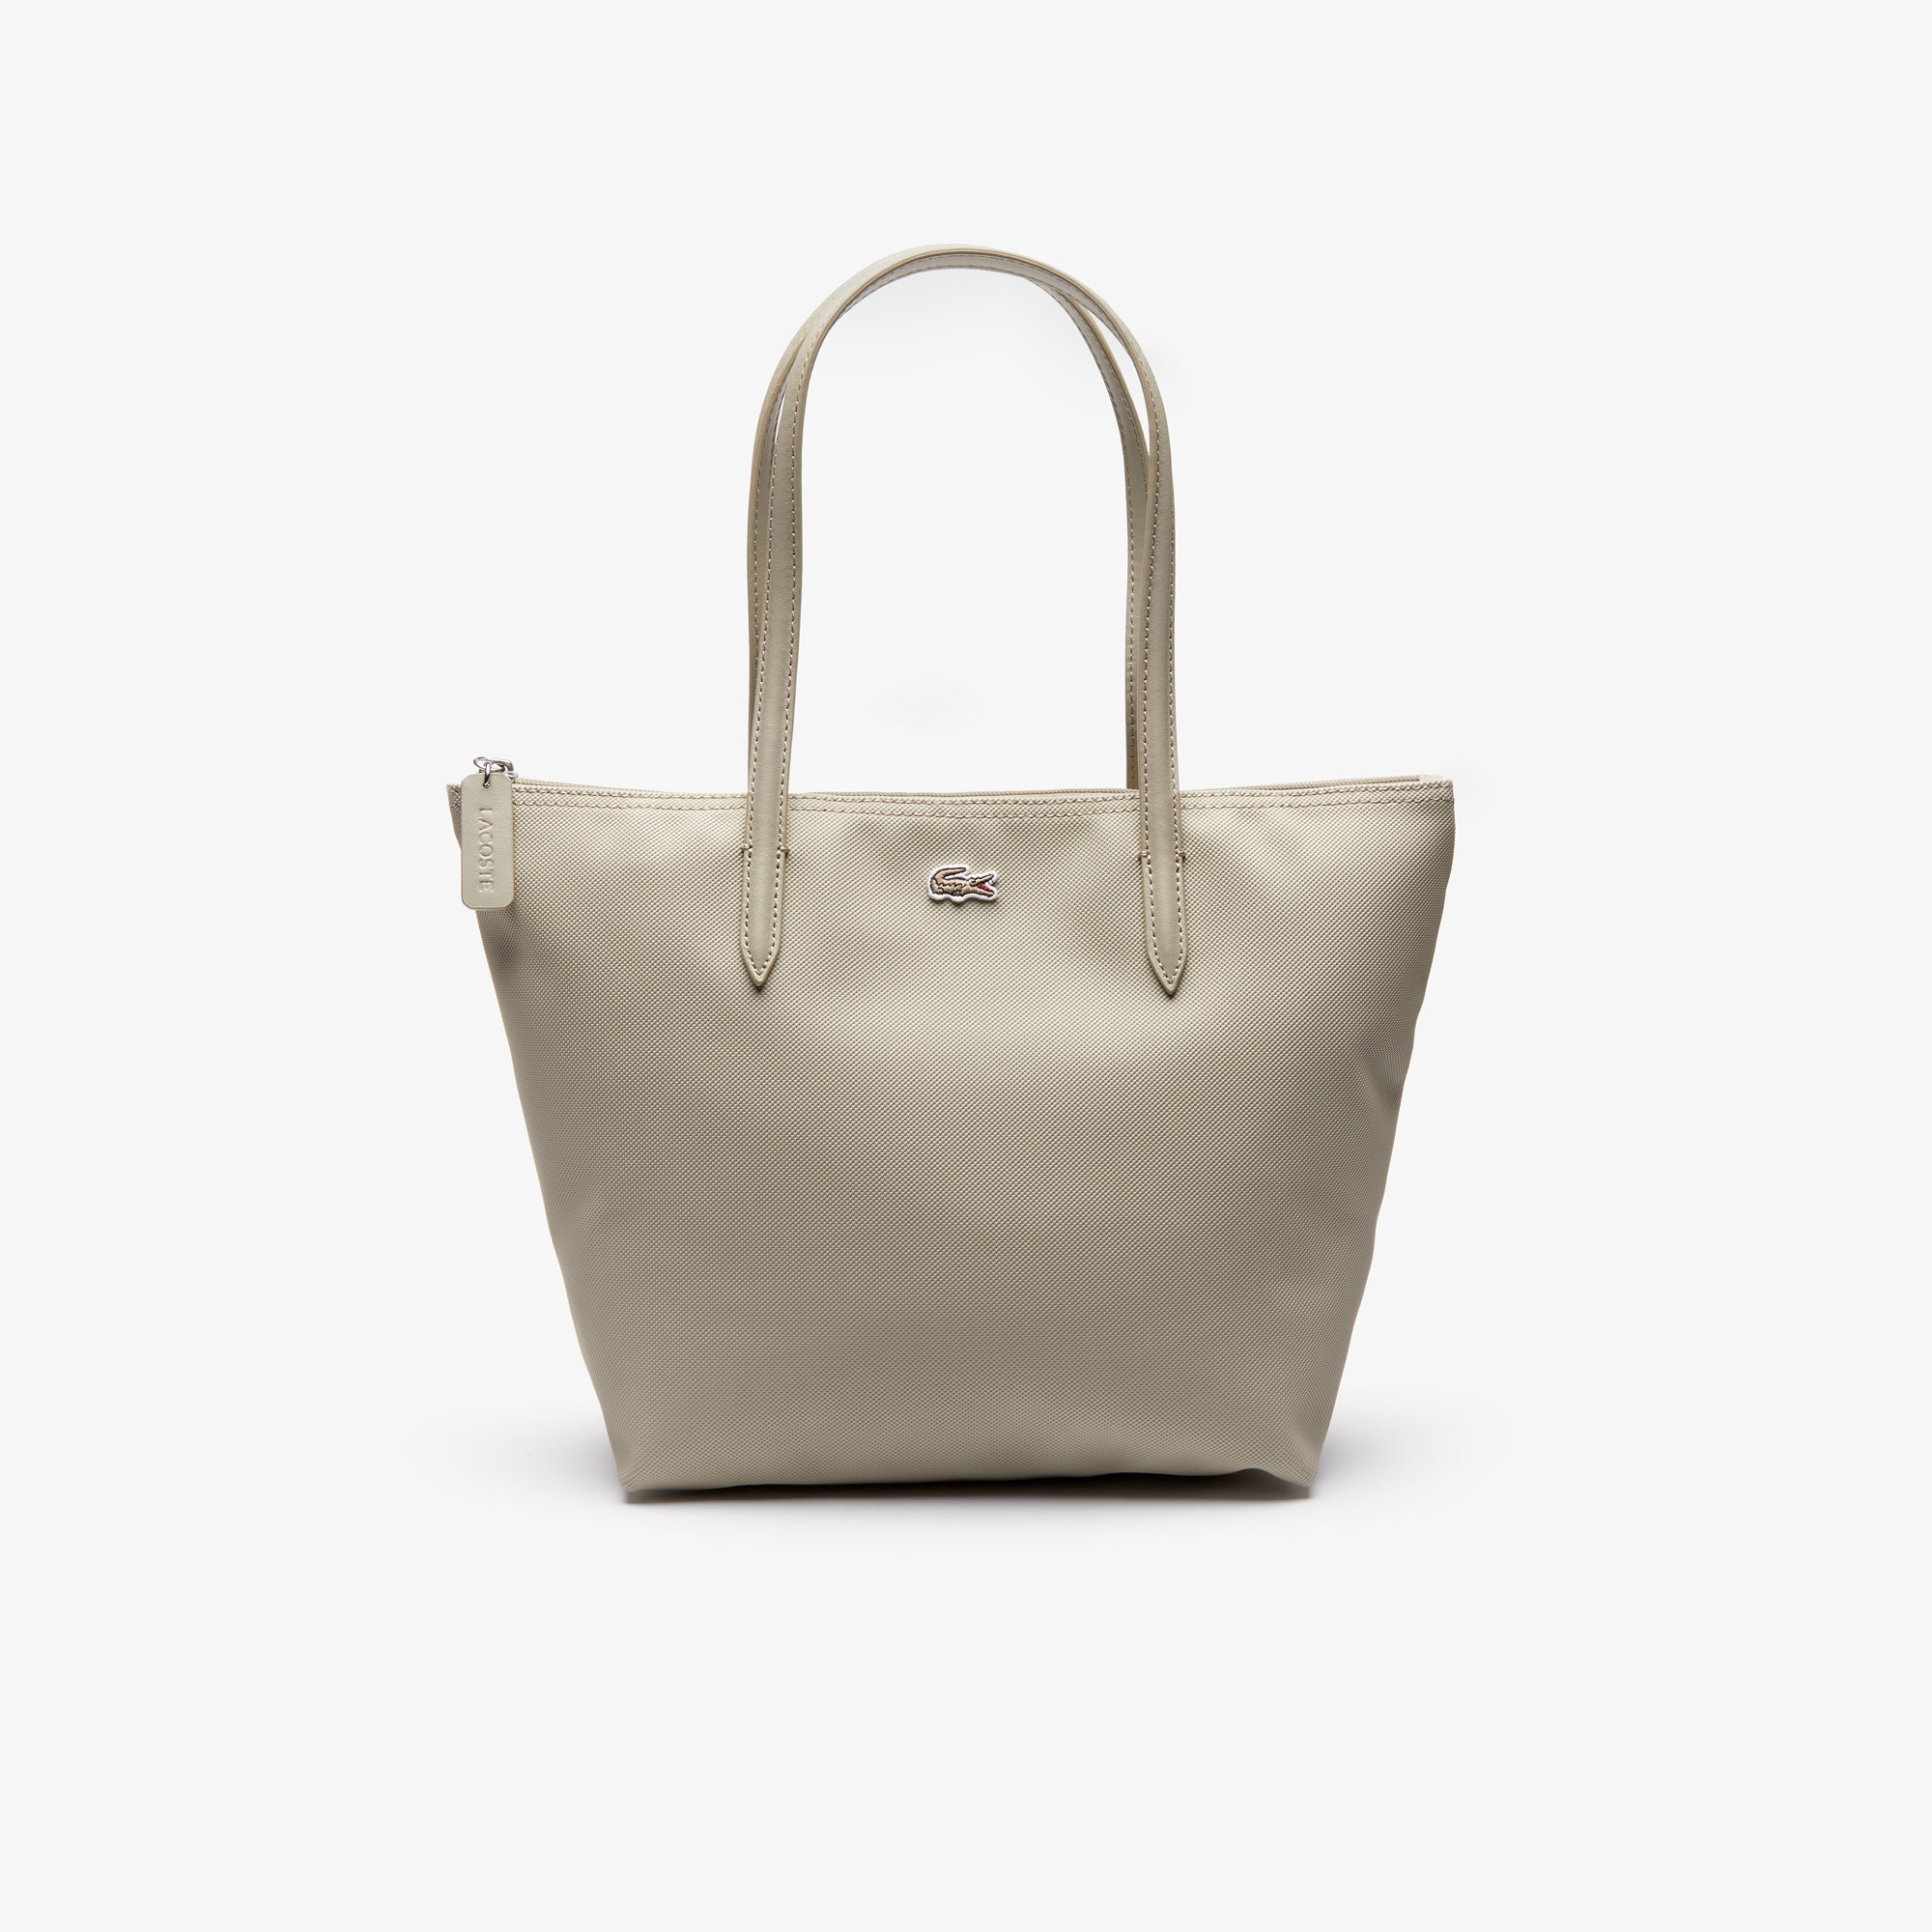 541c9906e7d Bags & Handbags collection | Women's Leather Goods | LACOSTE